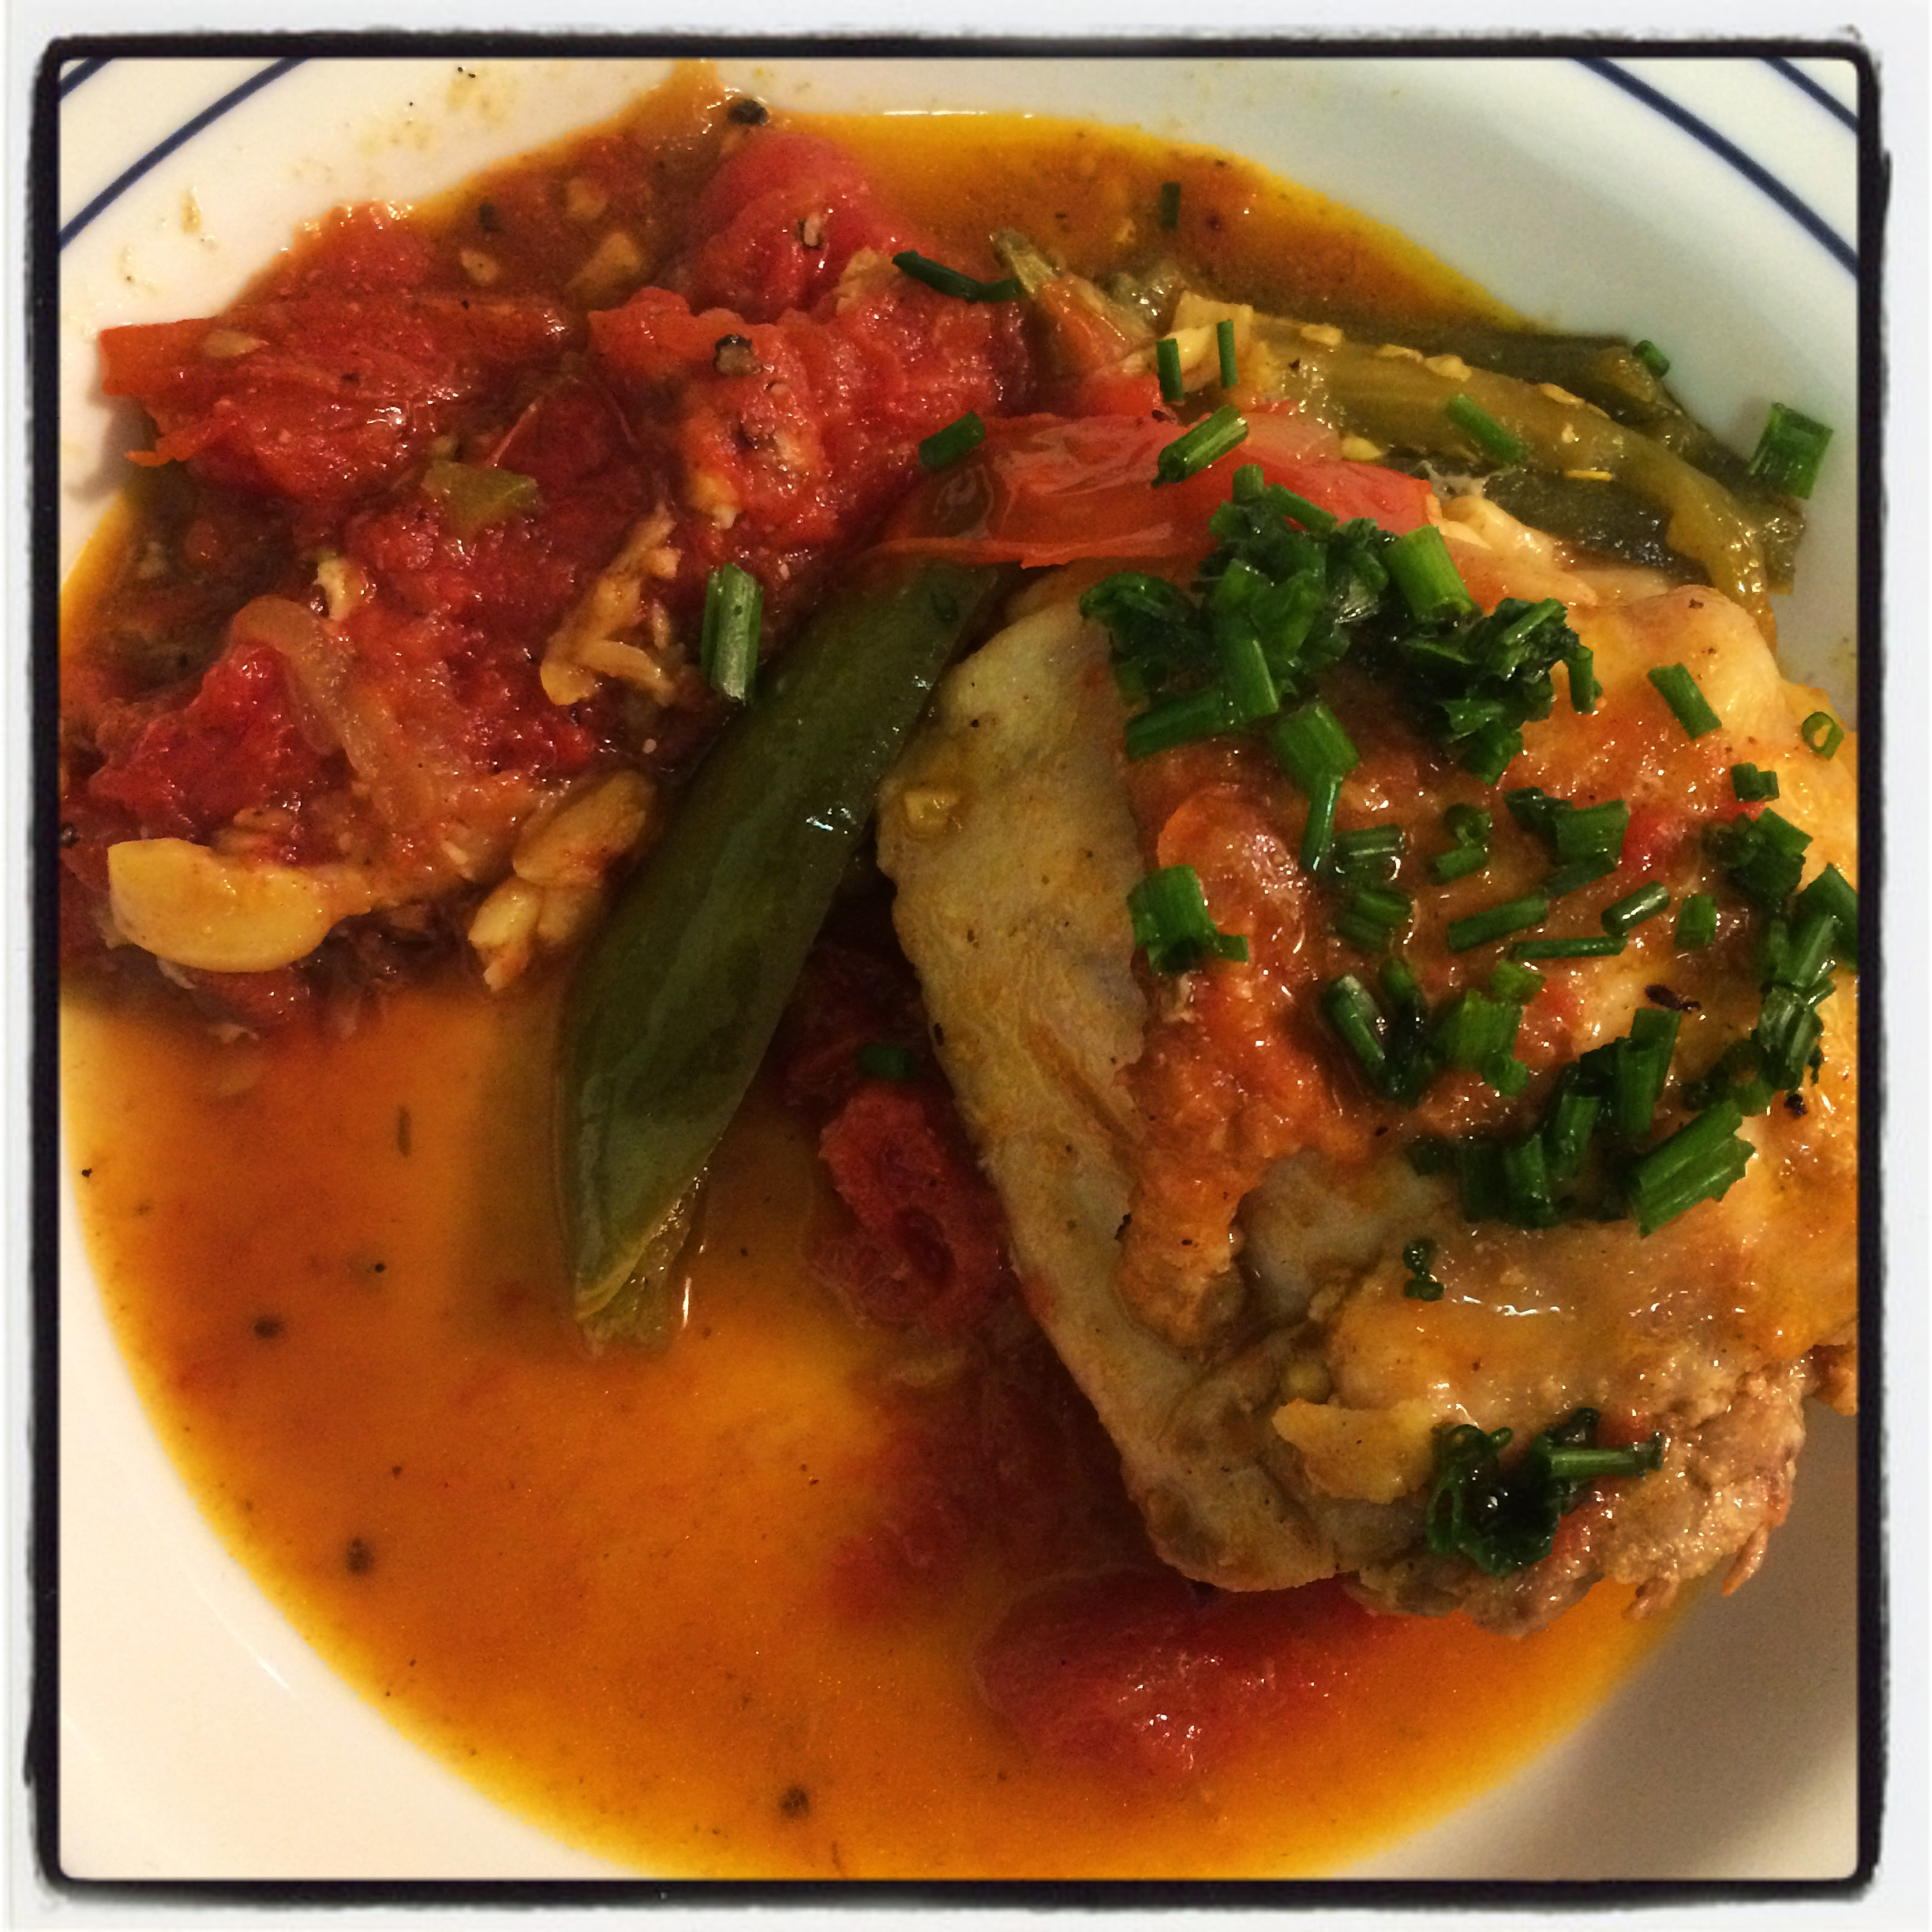 CHICKEN AND CHIVES IN A TOMATO JALAPENO STEW